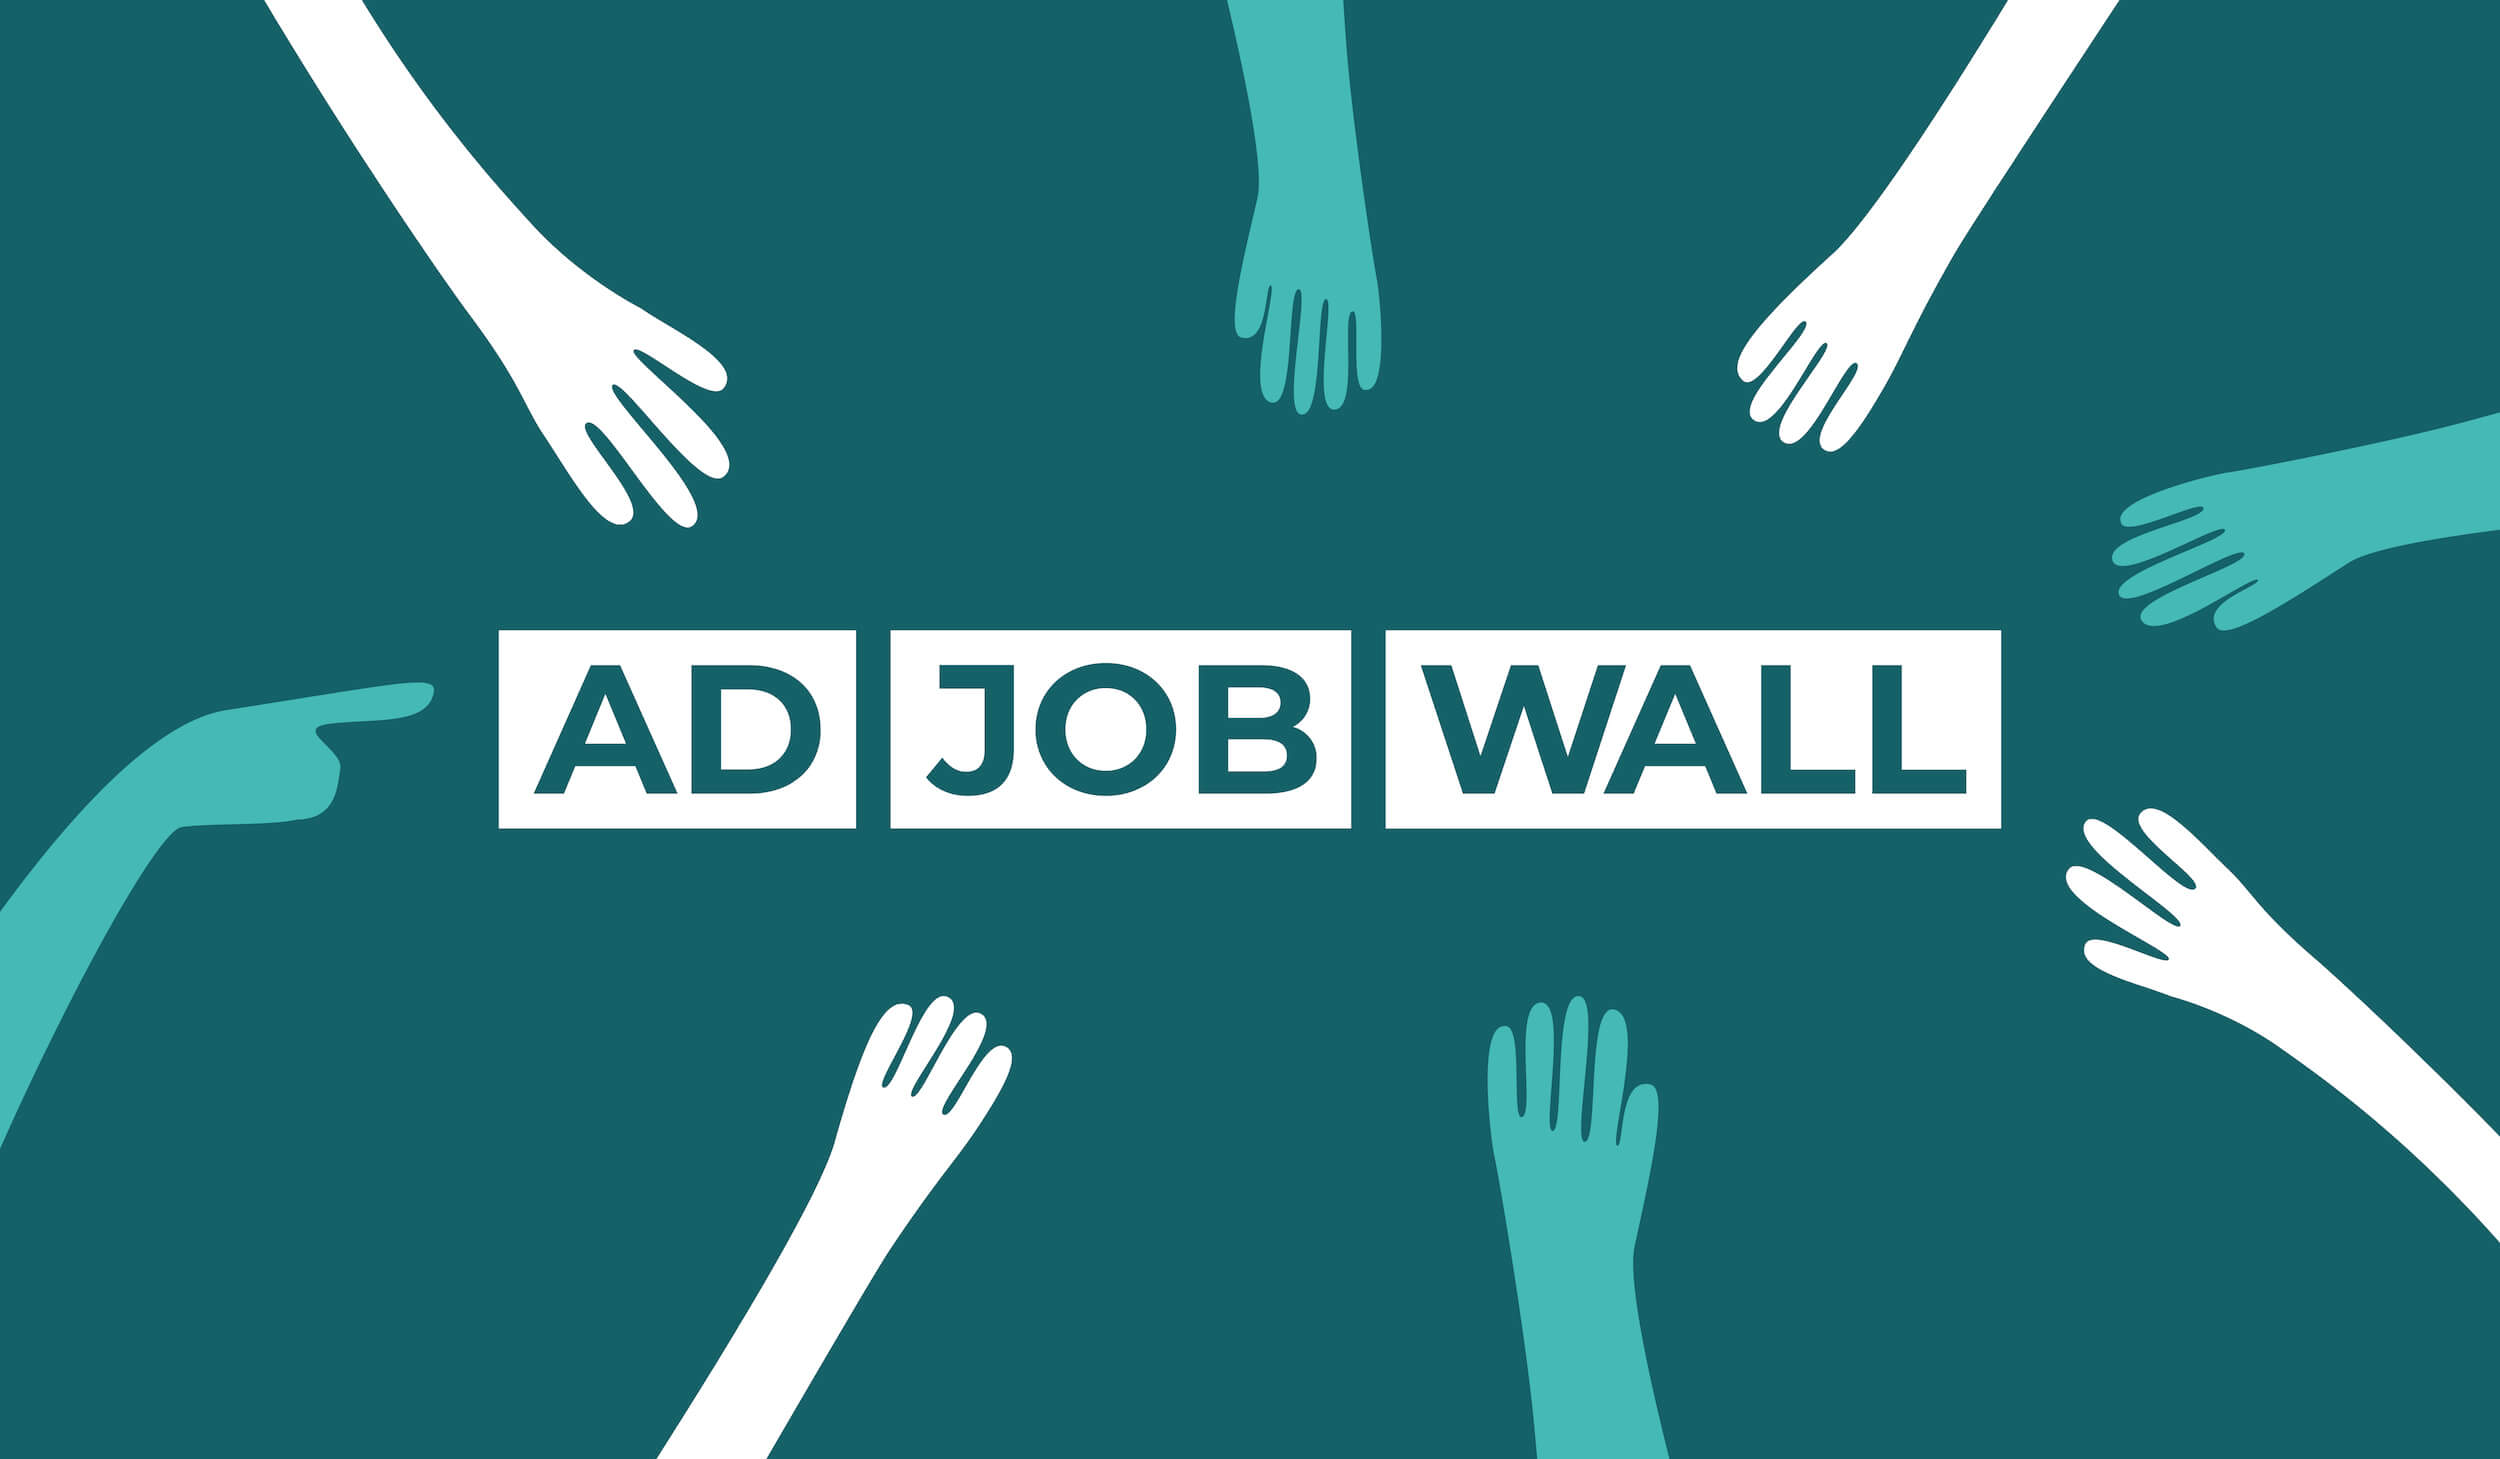 Ad Job Wall